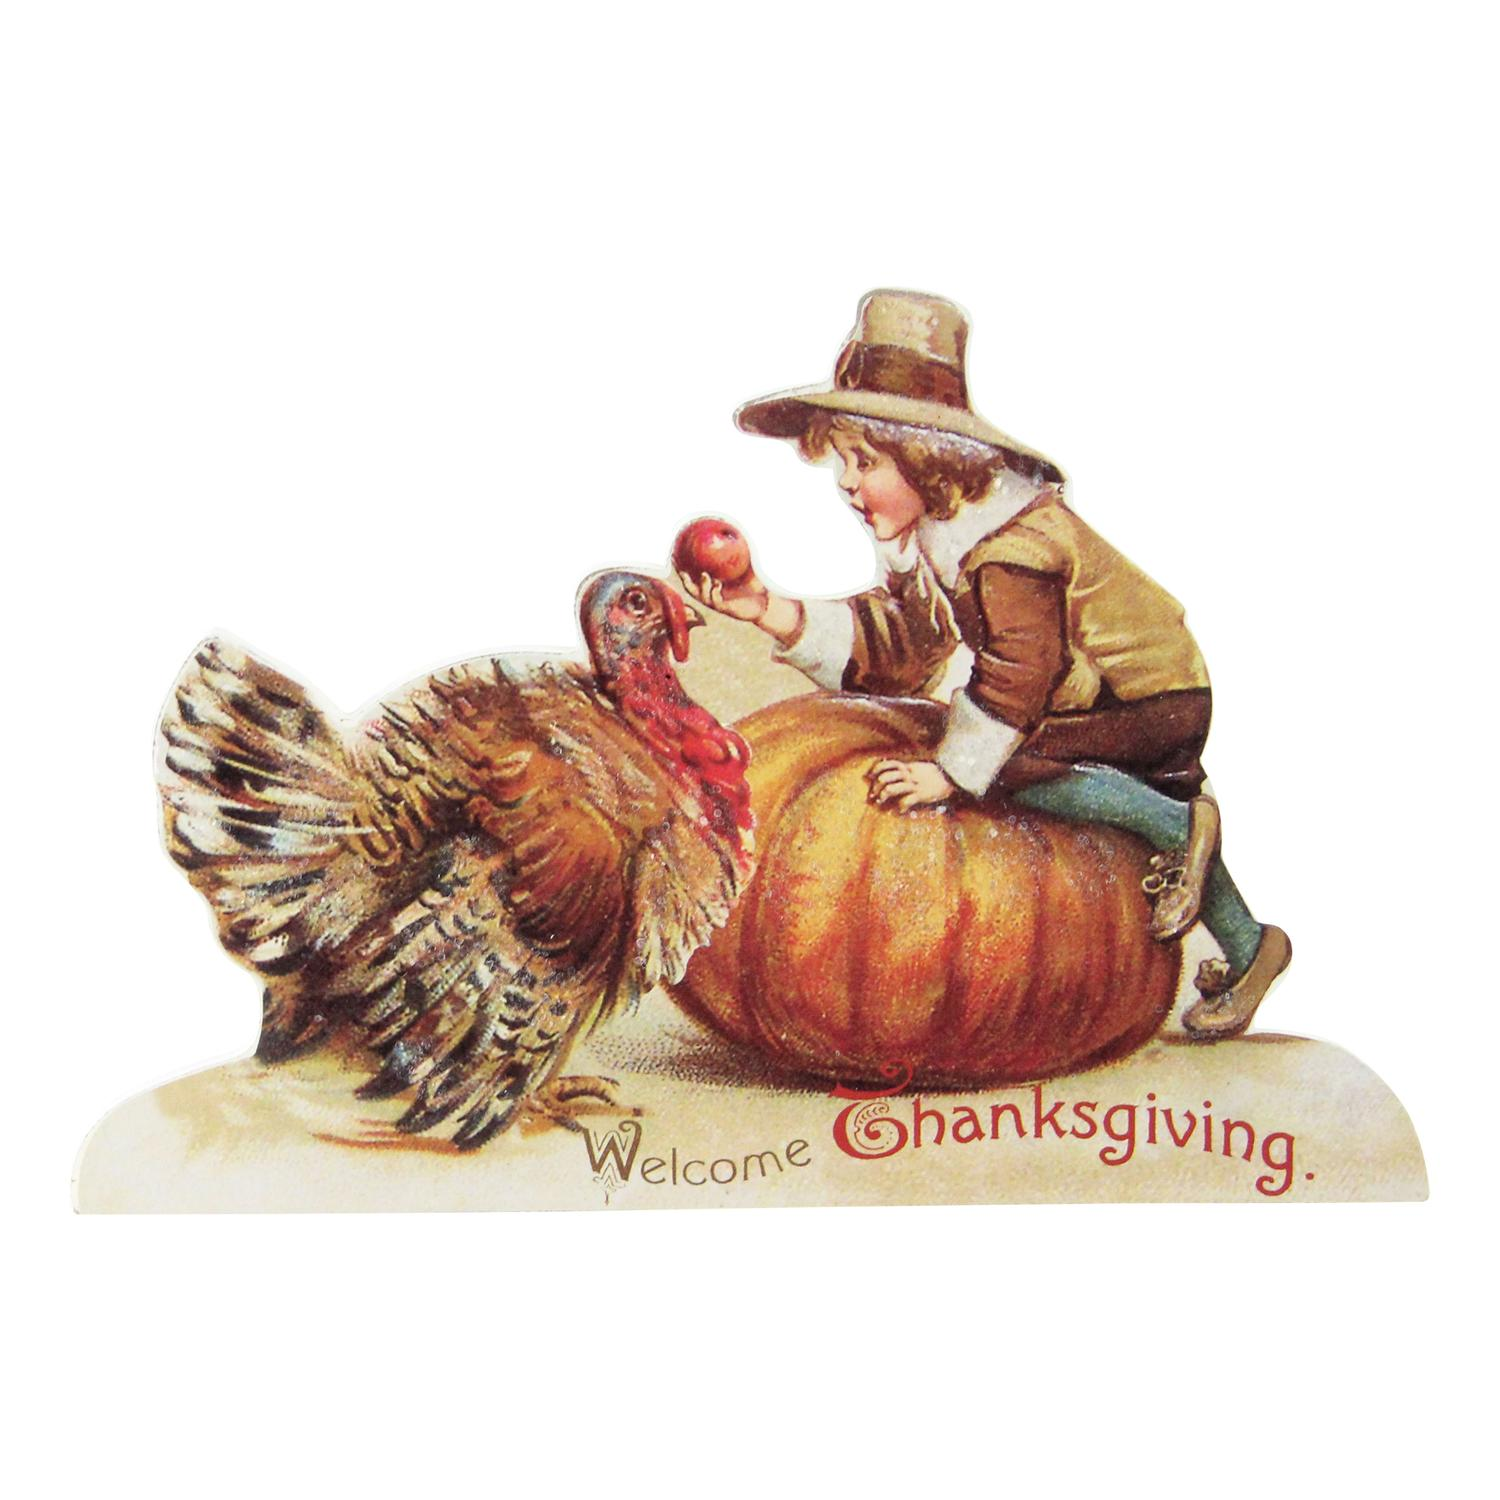 """8.25"""" Glittered Child With Turkey and Pumpkin Vintage Thanksgiving Sign"""